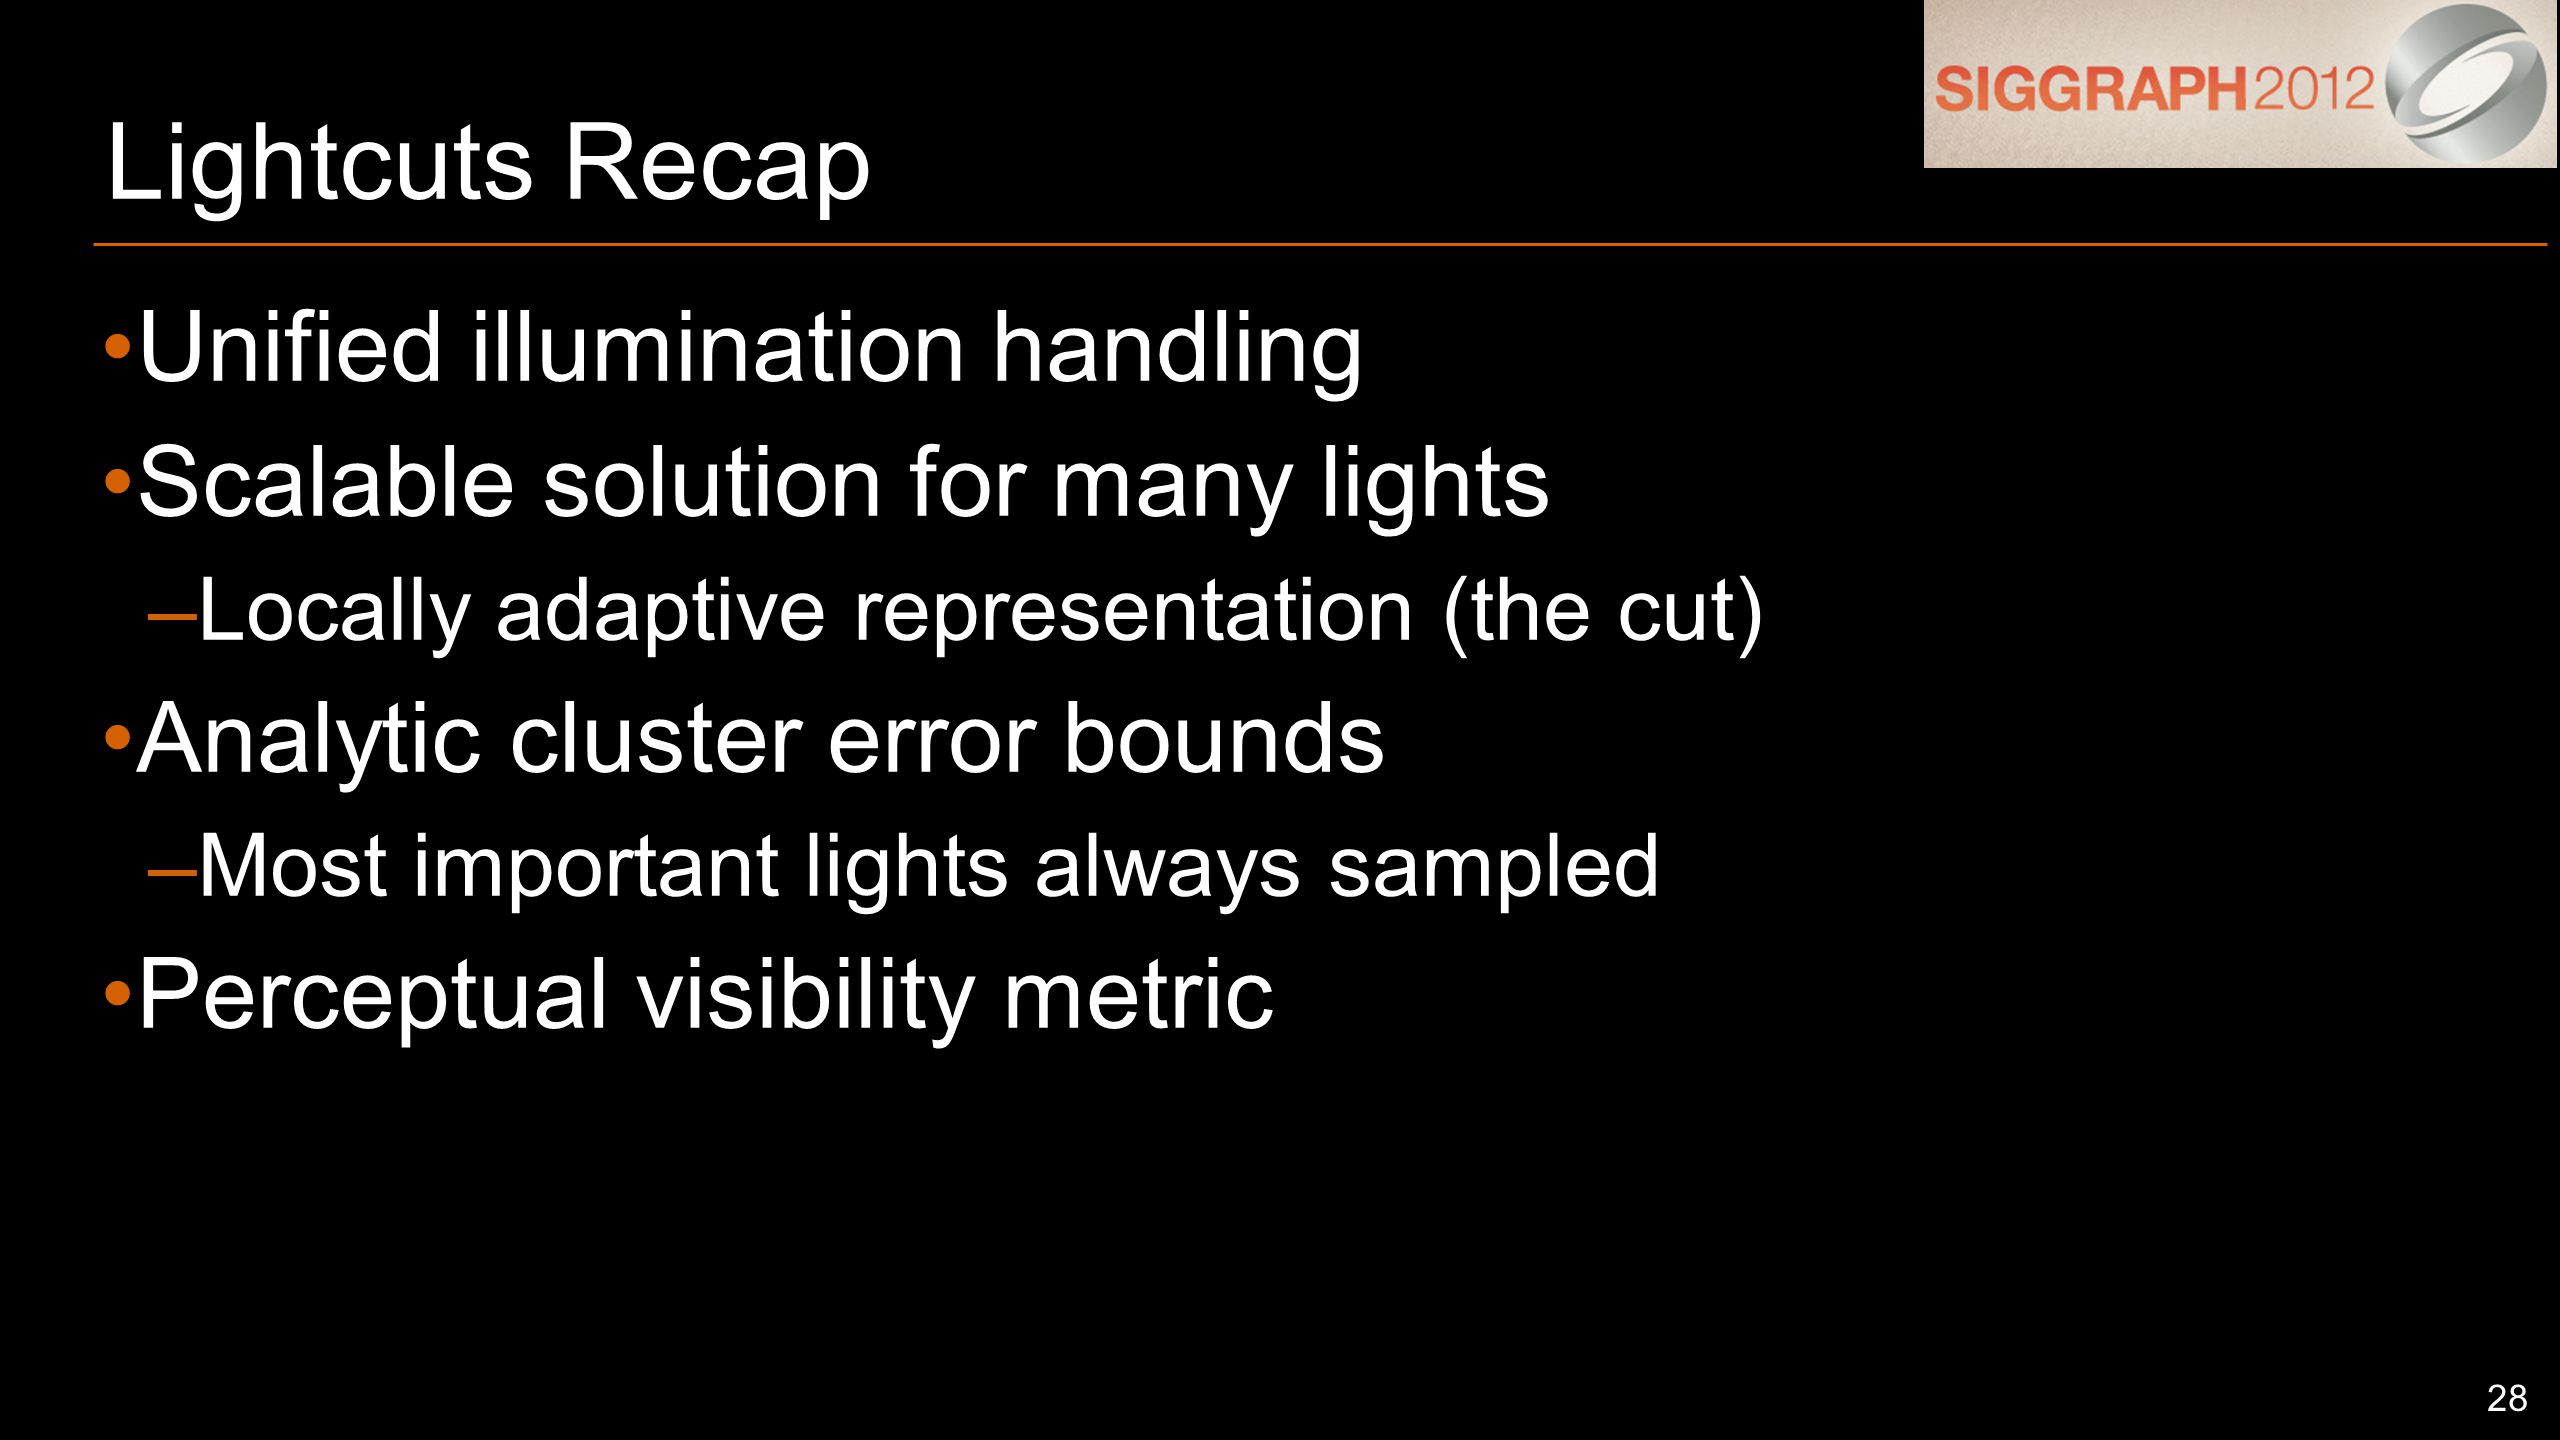 28 Lightcuts Recap Unified illumination handling Scalable solution for many lights –Locally adaptive representation (the cut) Analytic cluster error bounds –Most important lights always sampled Perceptual visibility metric